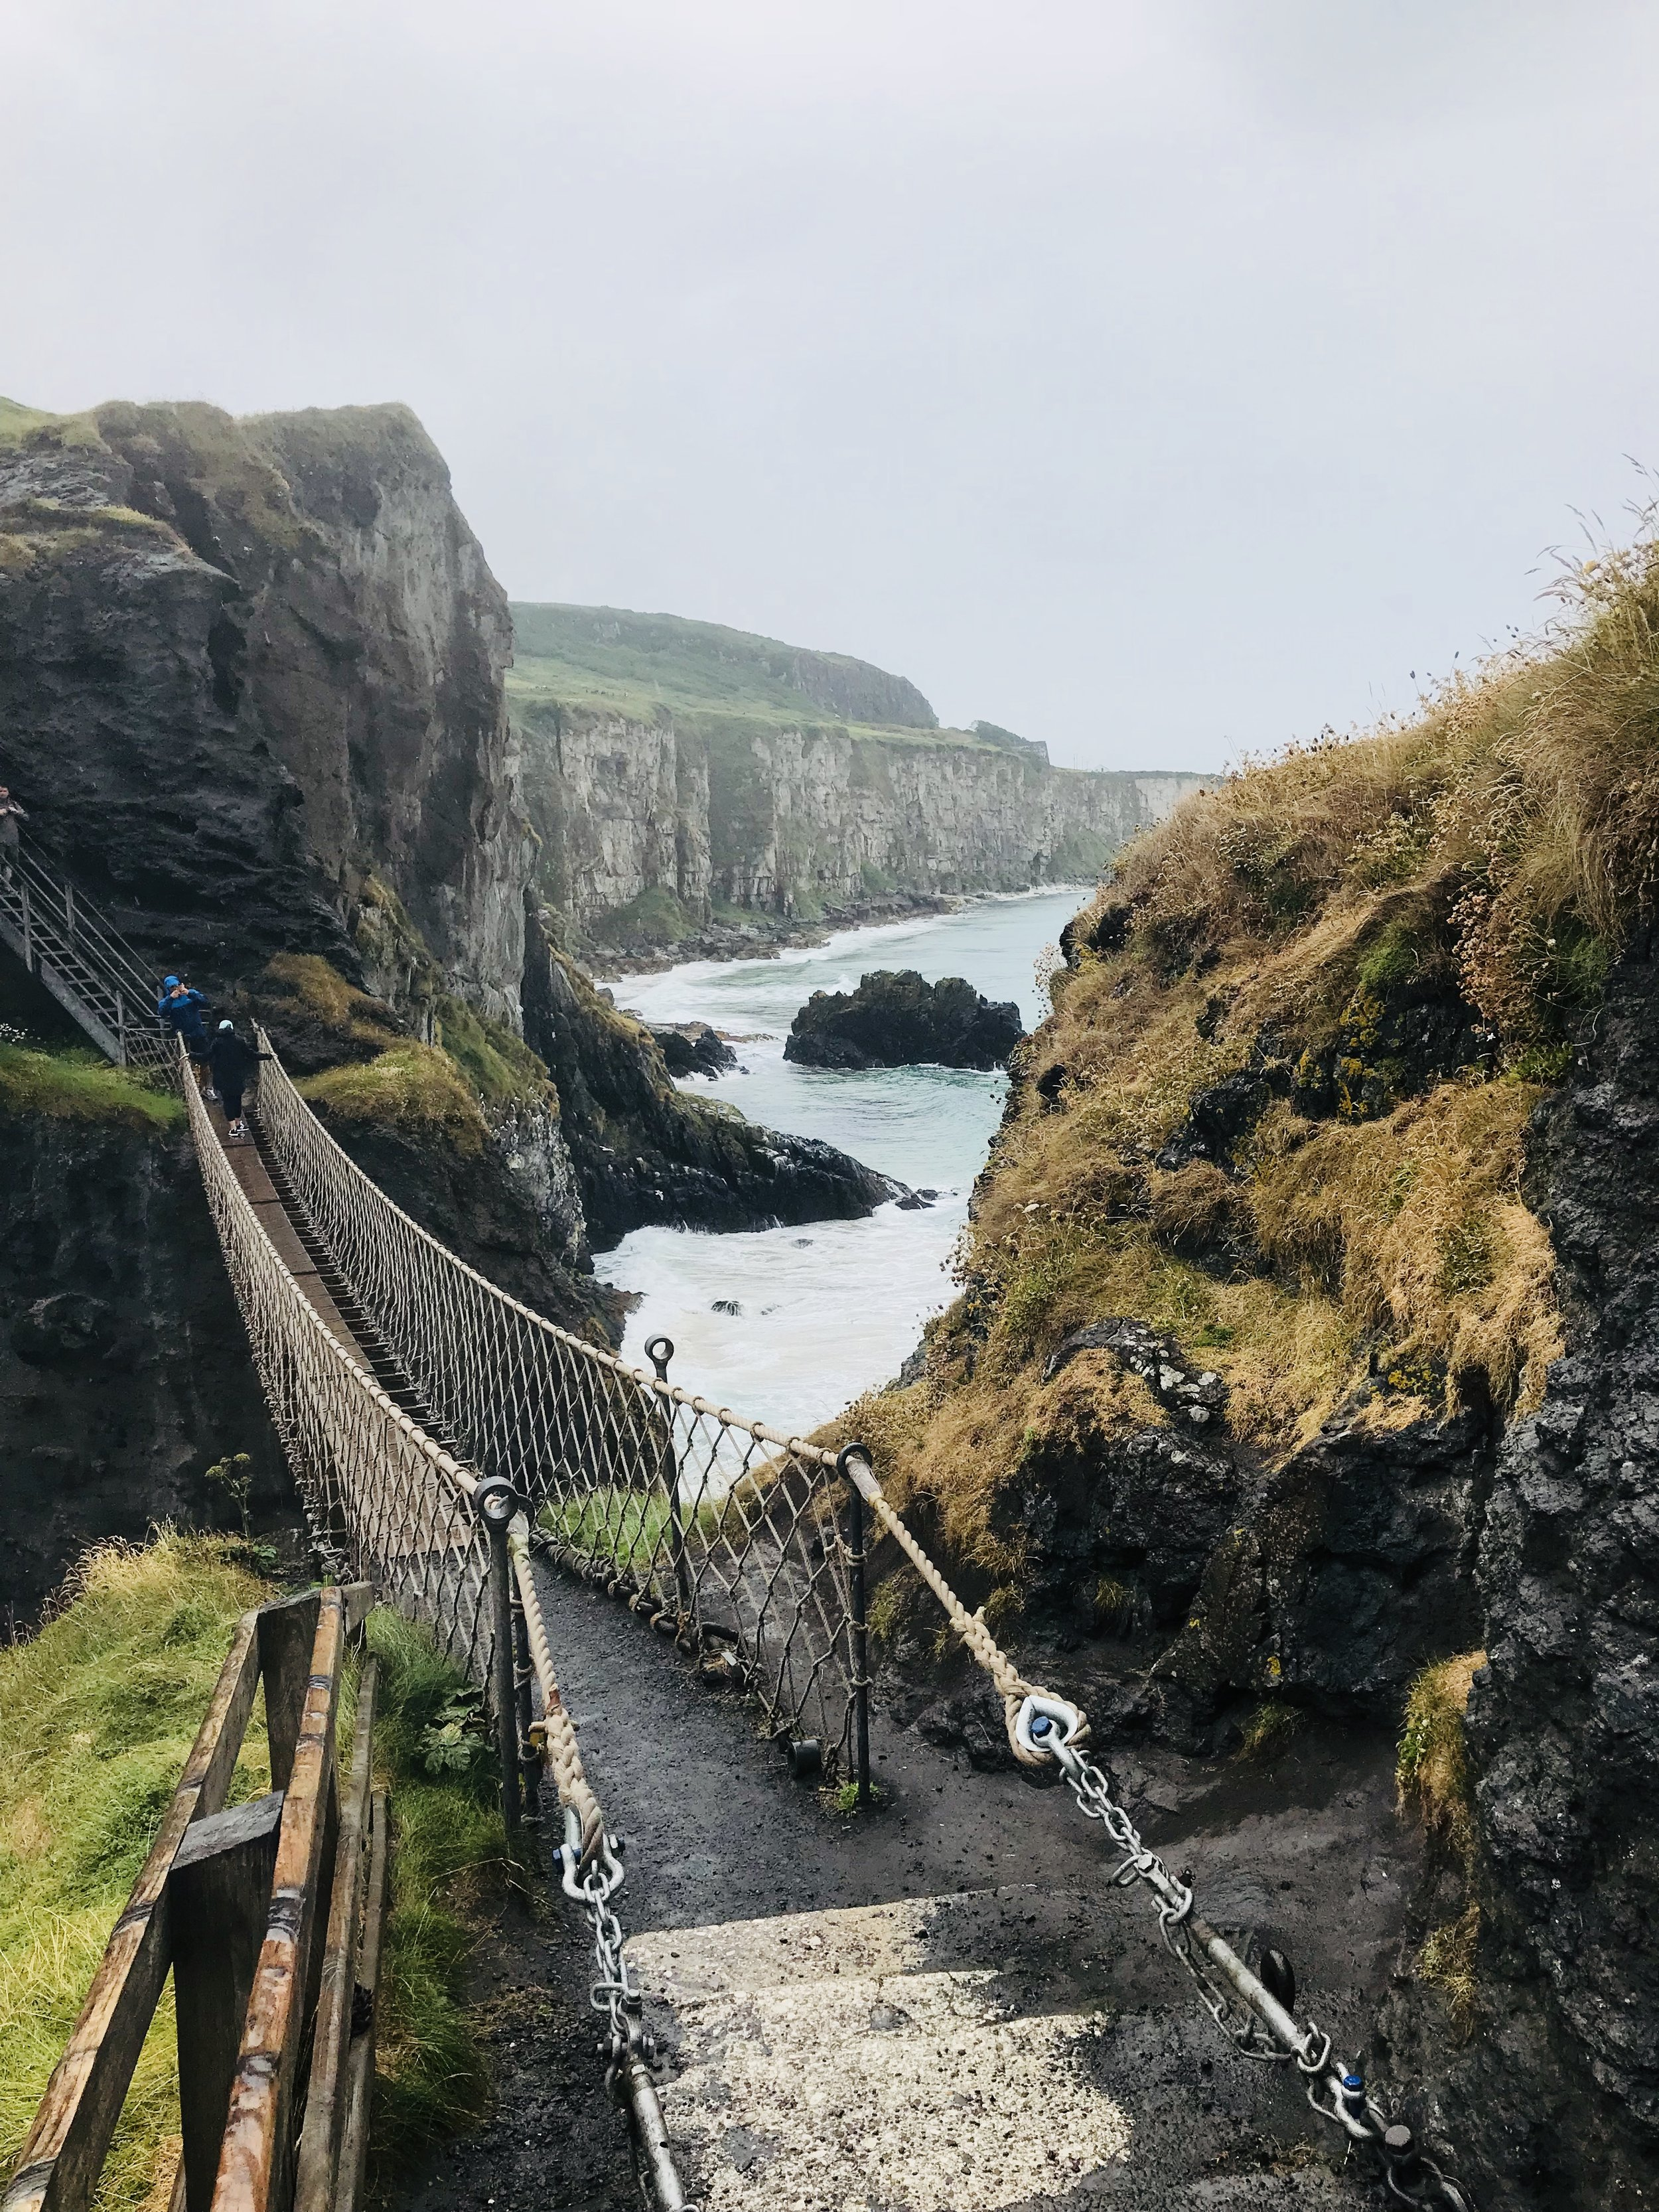 Crossing the Carrick-a-Rede Bridge